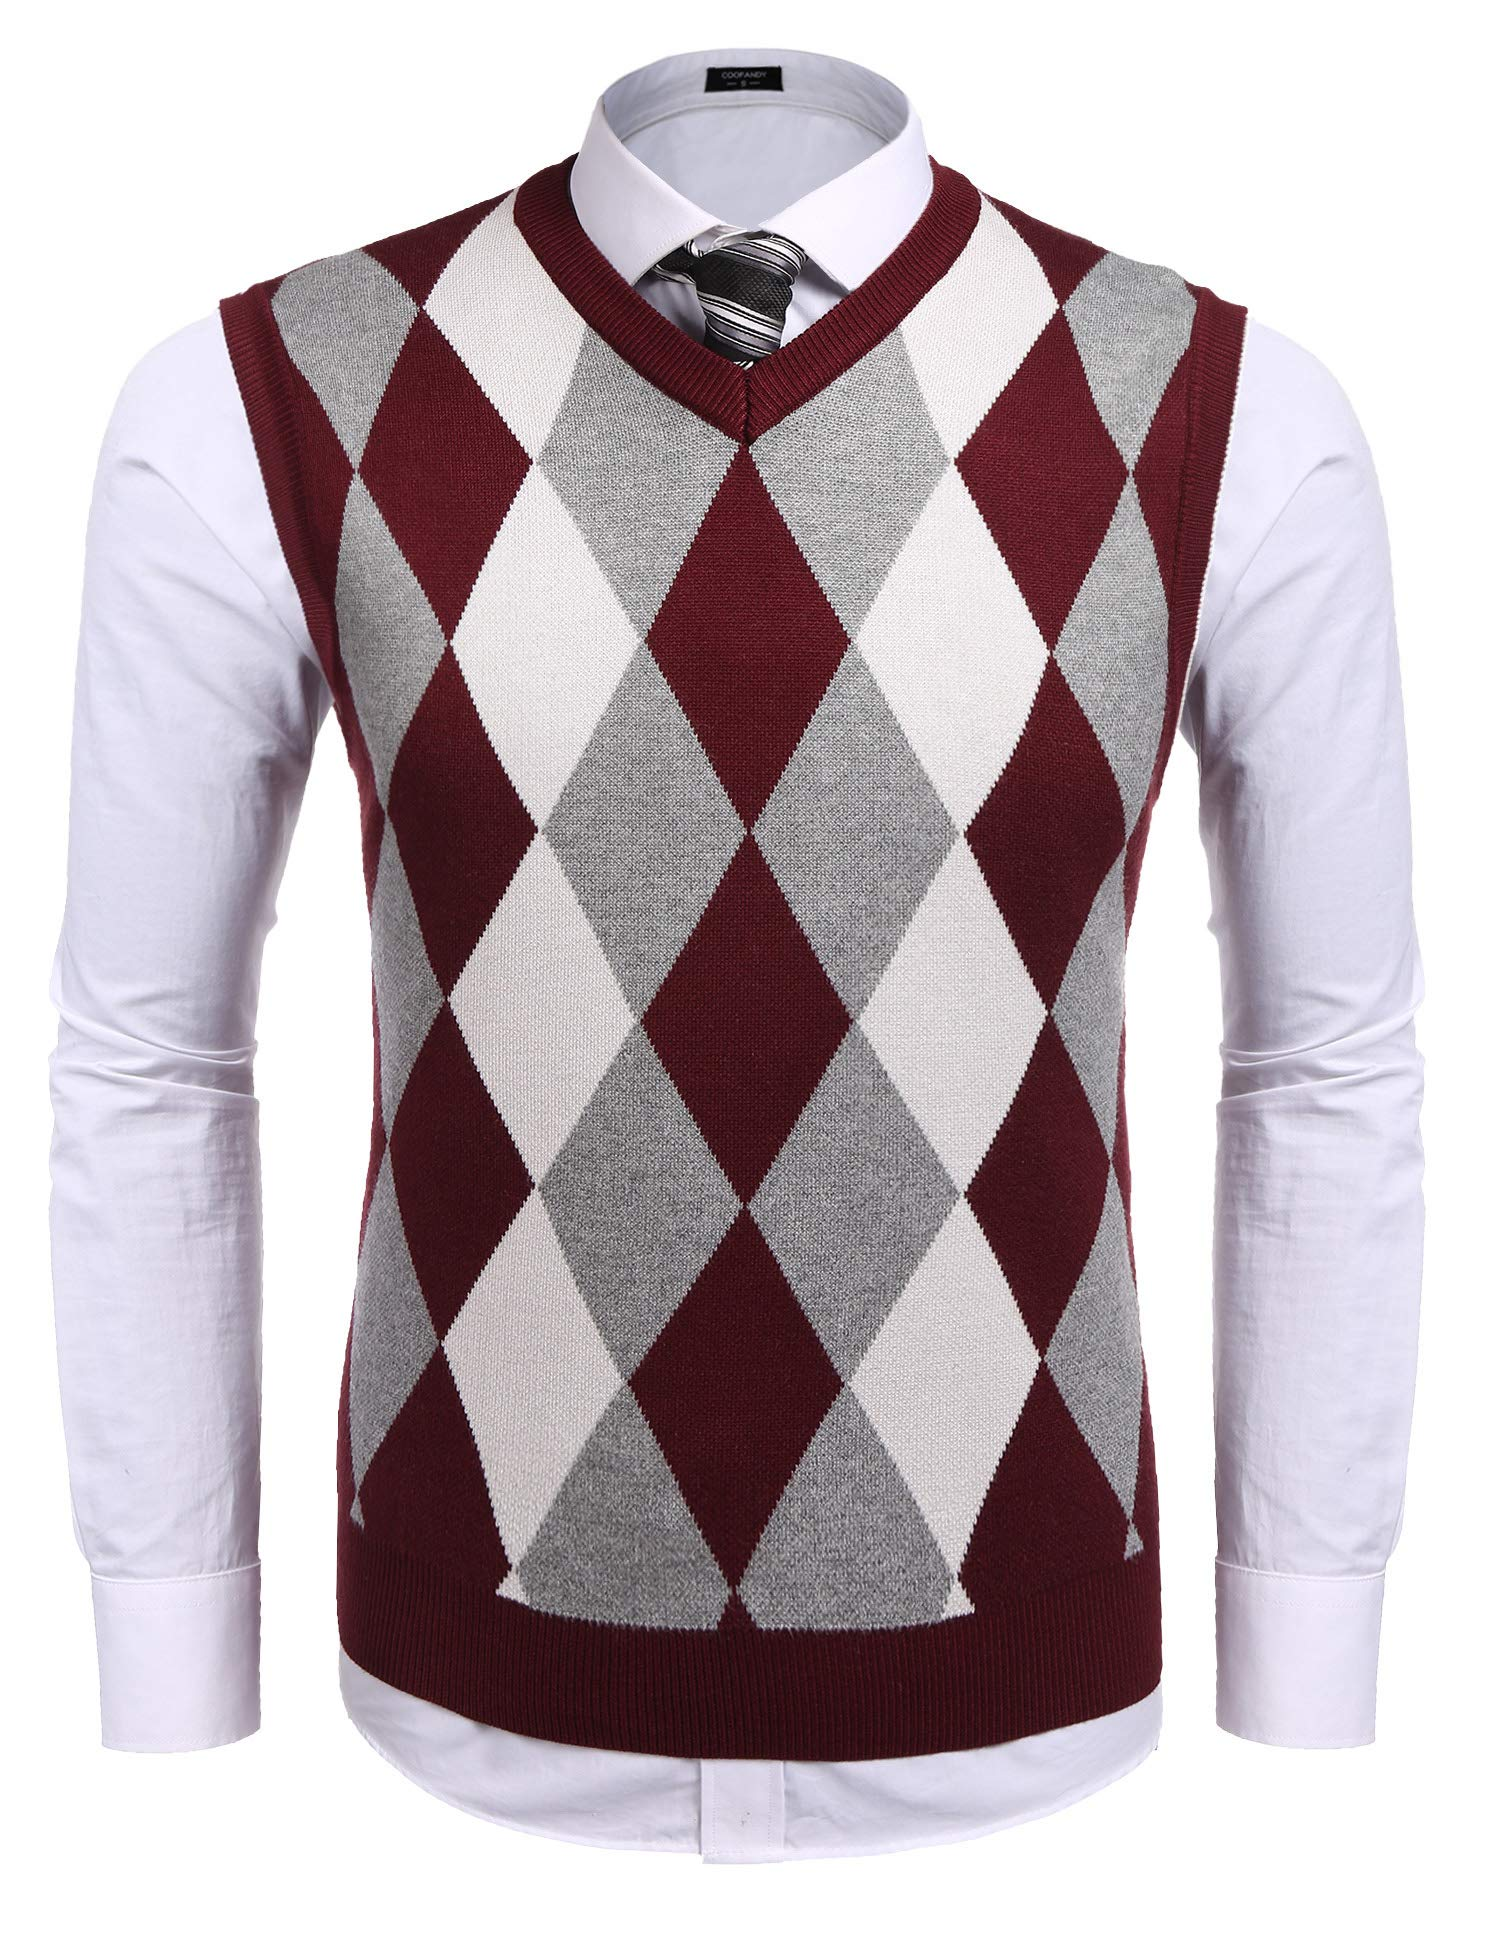 Coofandy Men's Casual Slim Fit V-neck Rhombus Business Knitwear Sweater Vest,X-Large,Wine Red by COOFANDY